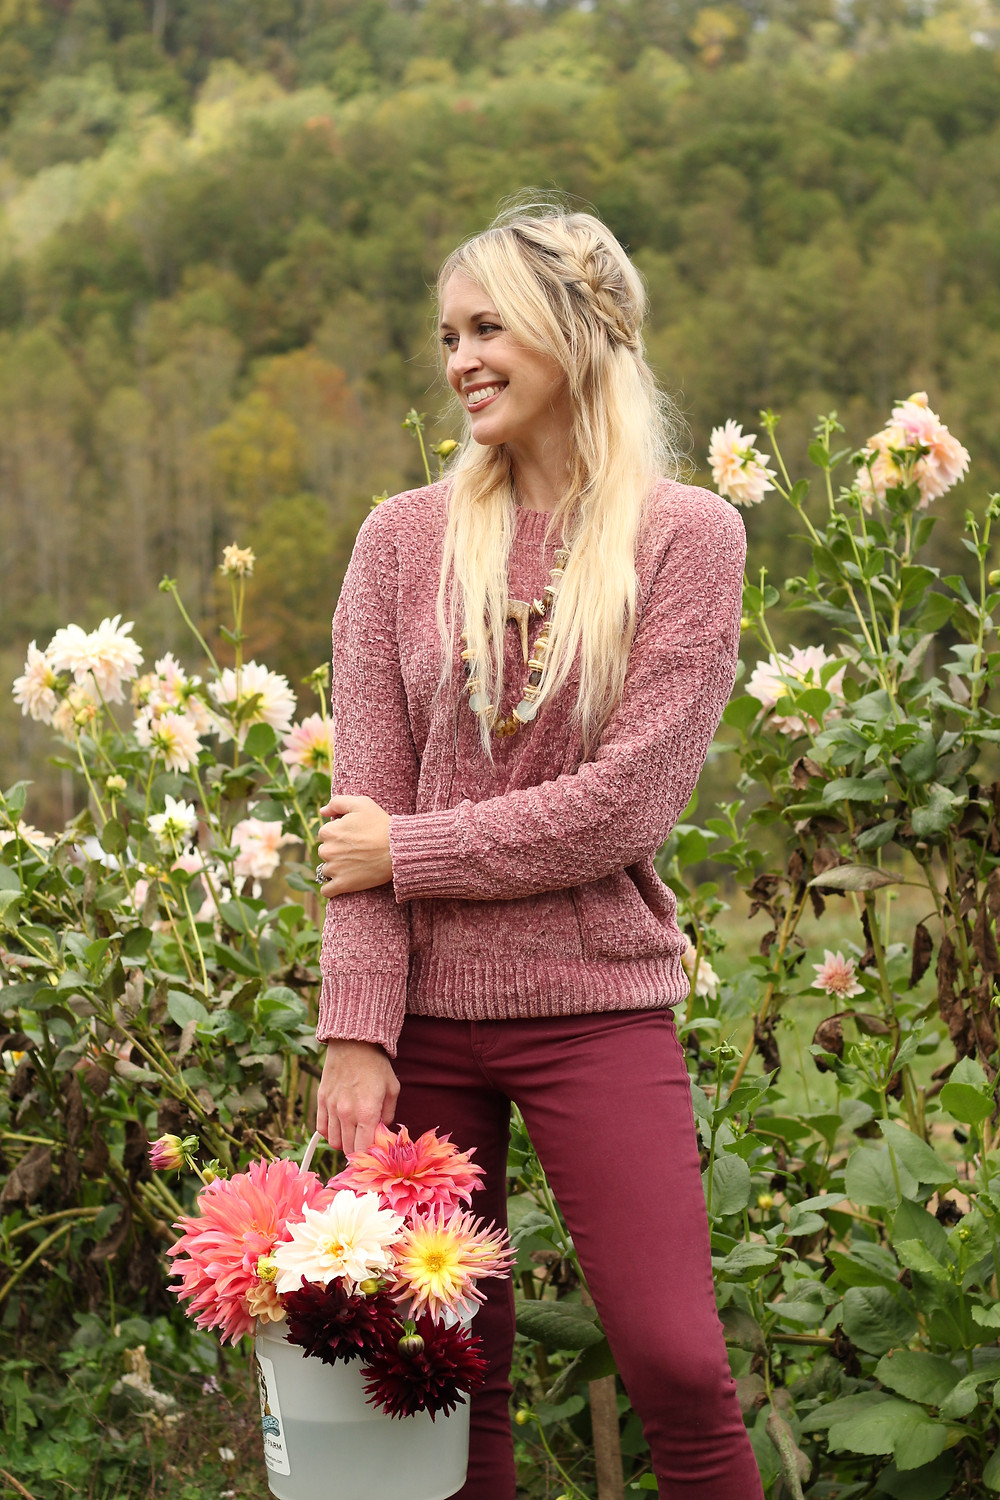 Brooke Williams wearing pink chenille sweater and burgundy jeans holds bucket of flowers in a flower field